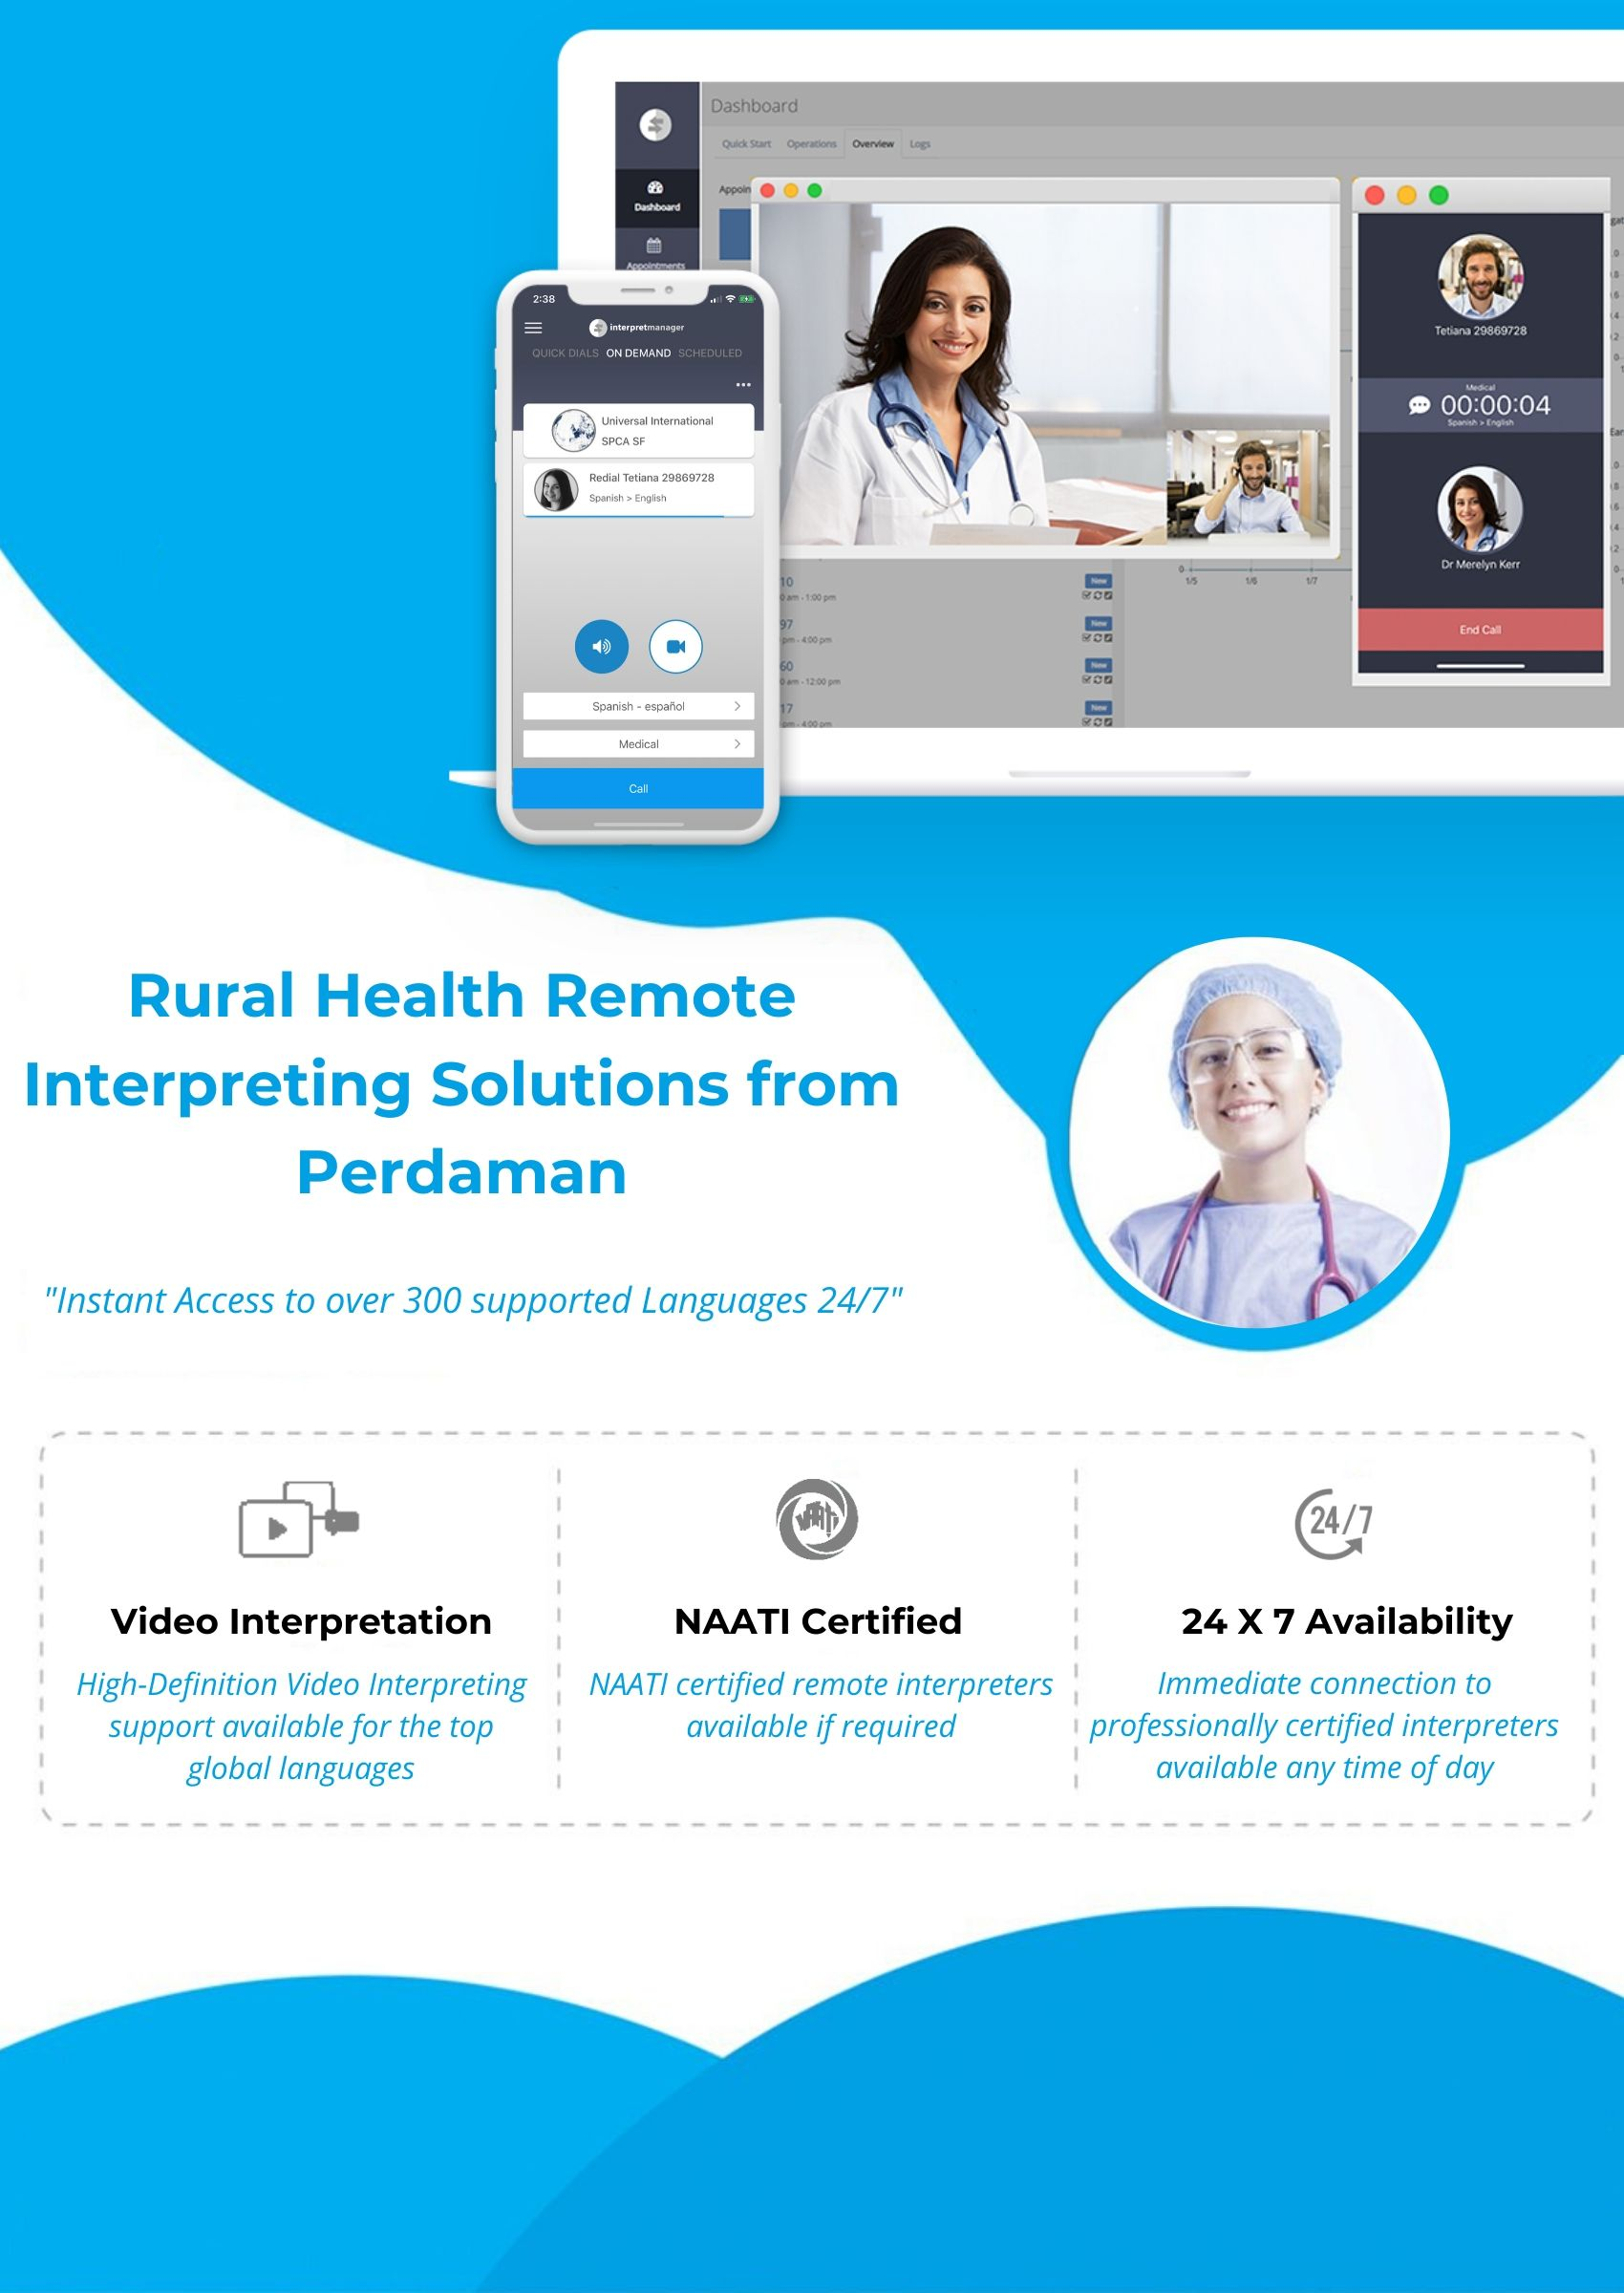 Rural Health Remote Interpreting Solutions from Perdman